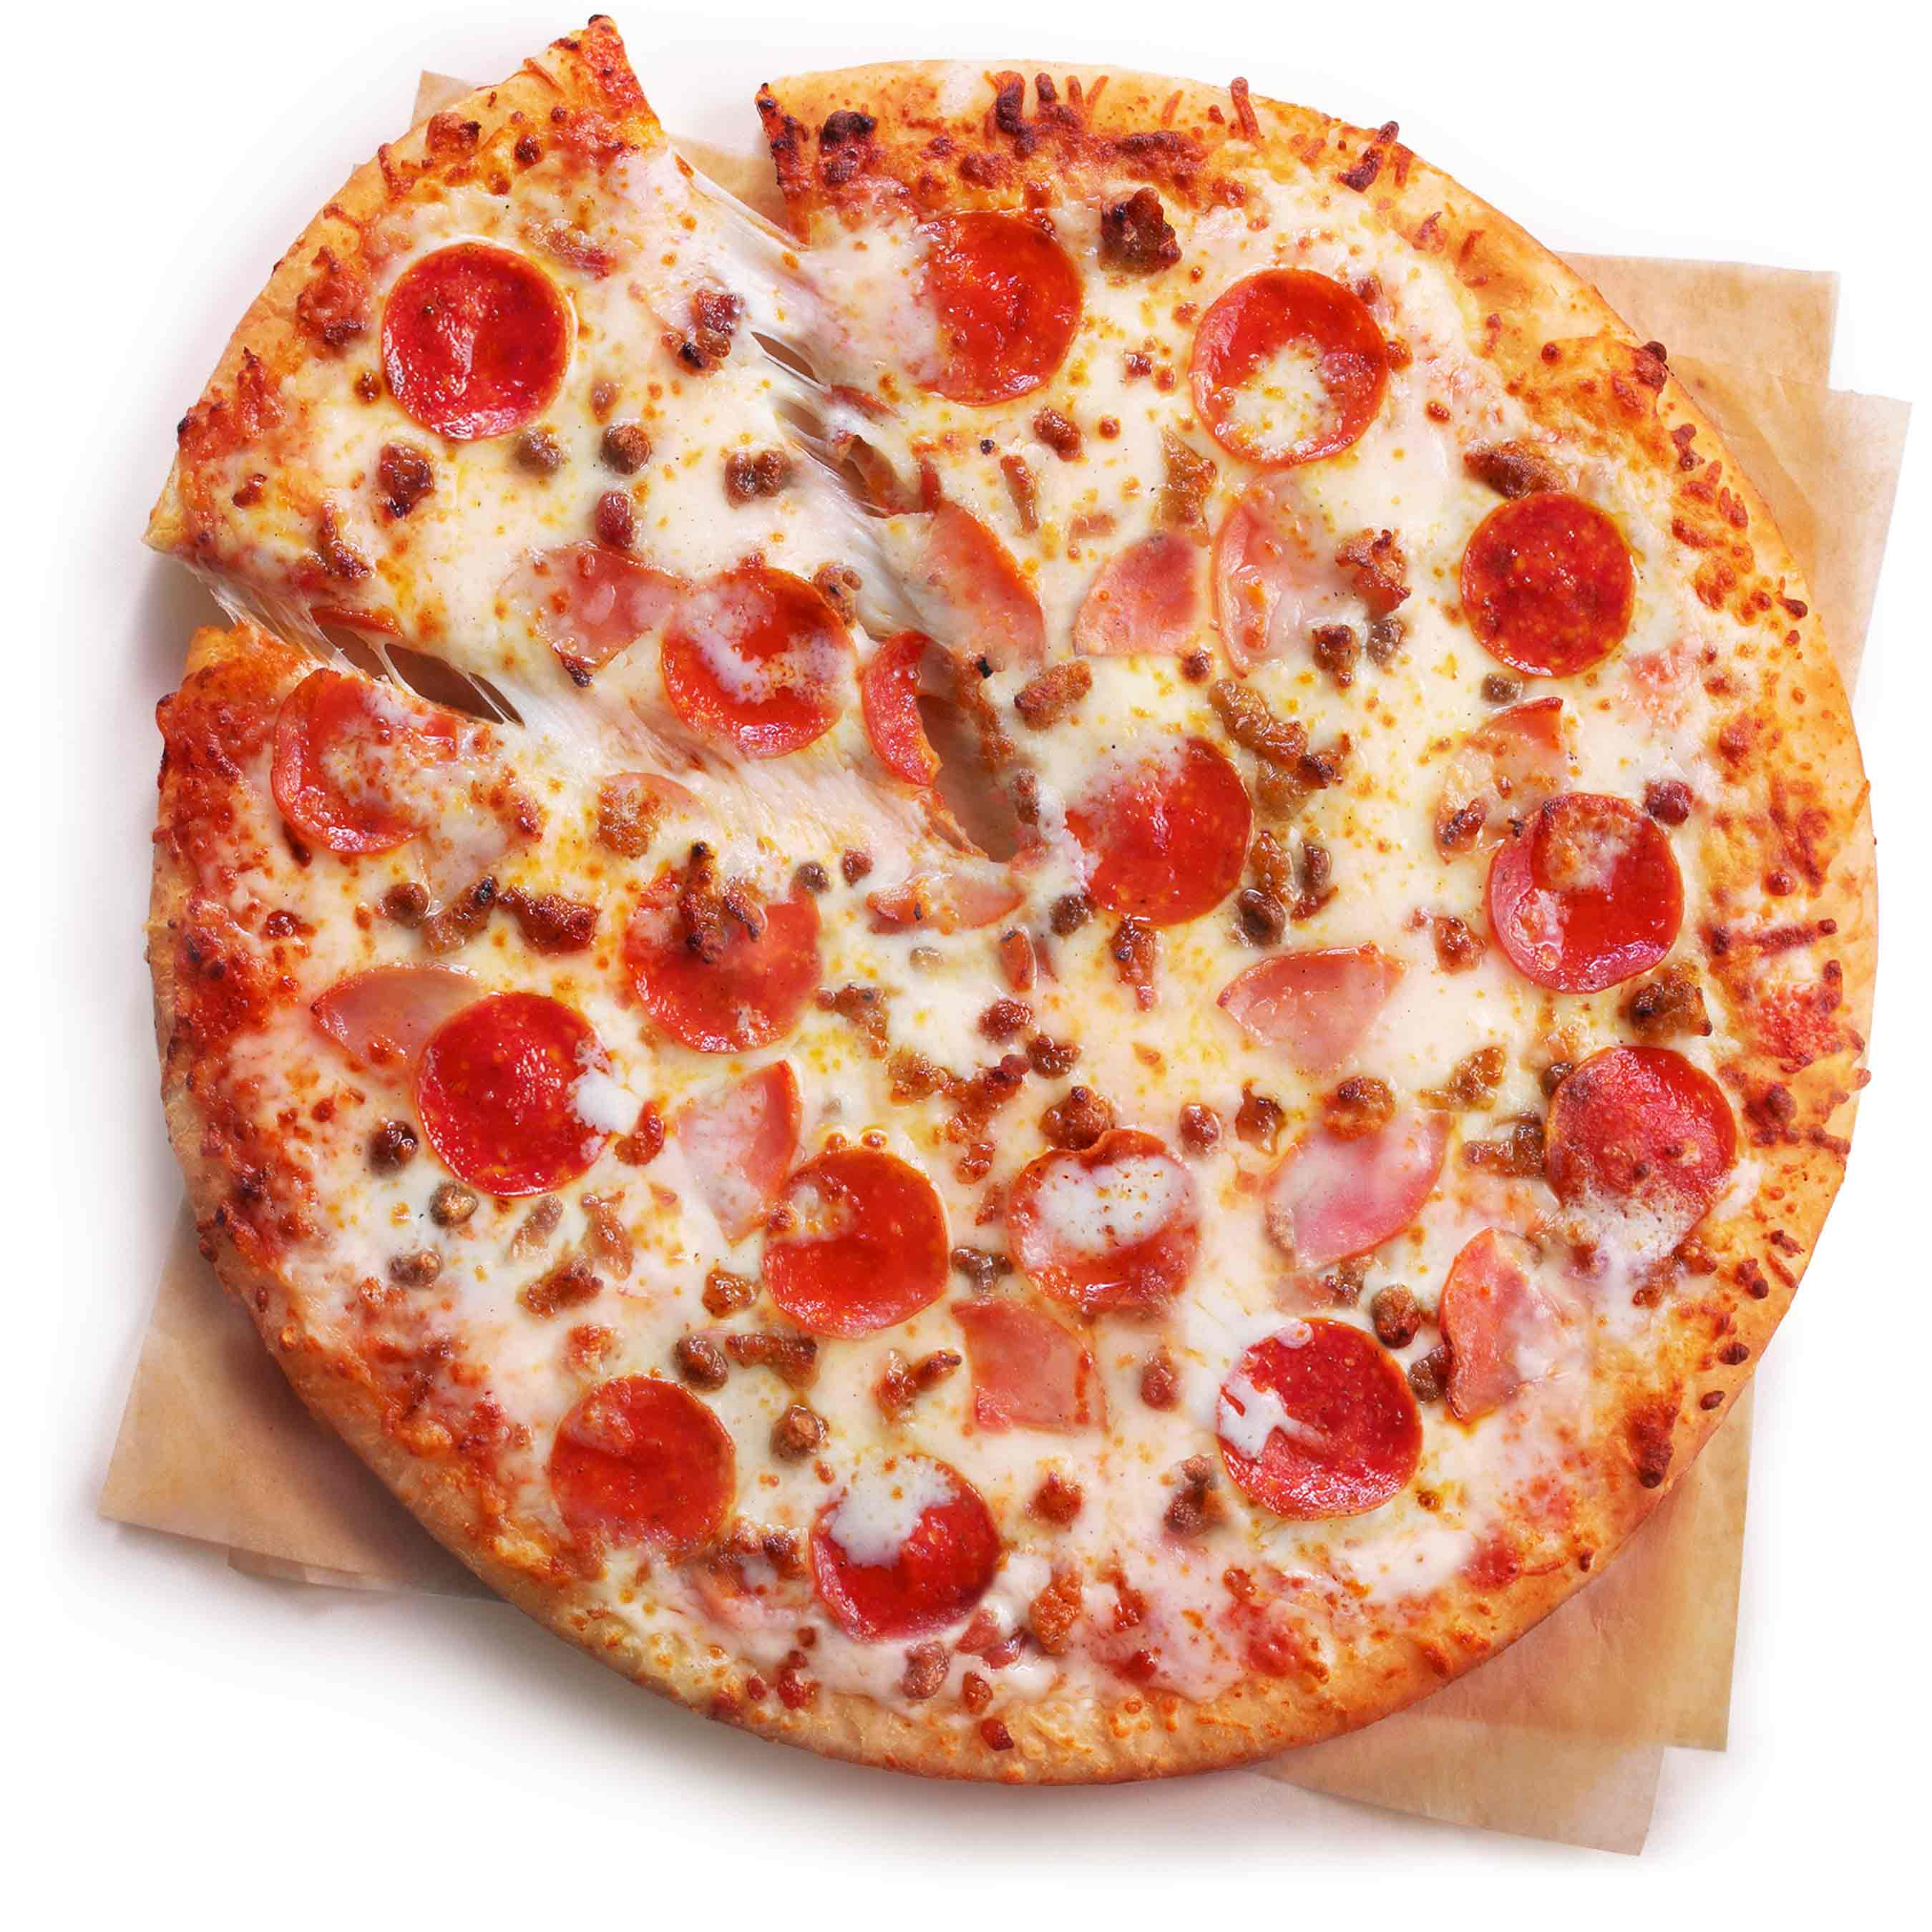 Delicious, hot & fresh! You're asking for a Pizza near me? 7-Eleven has you covered.